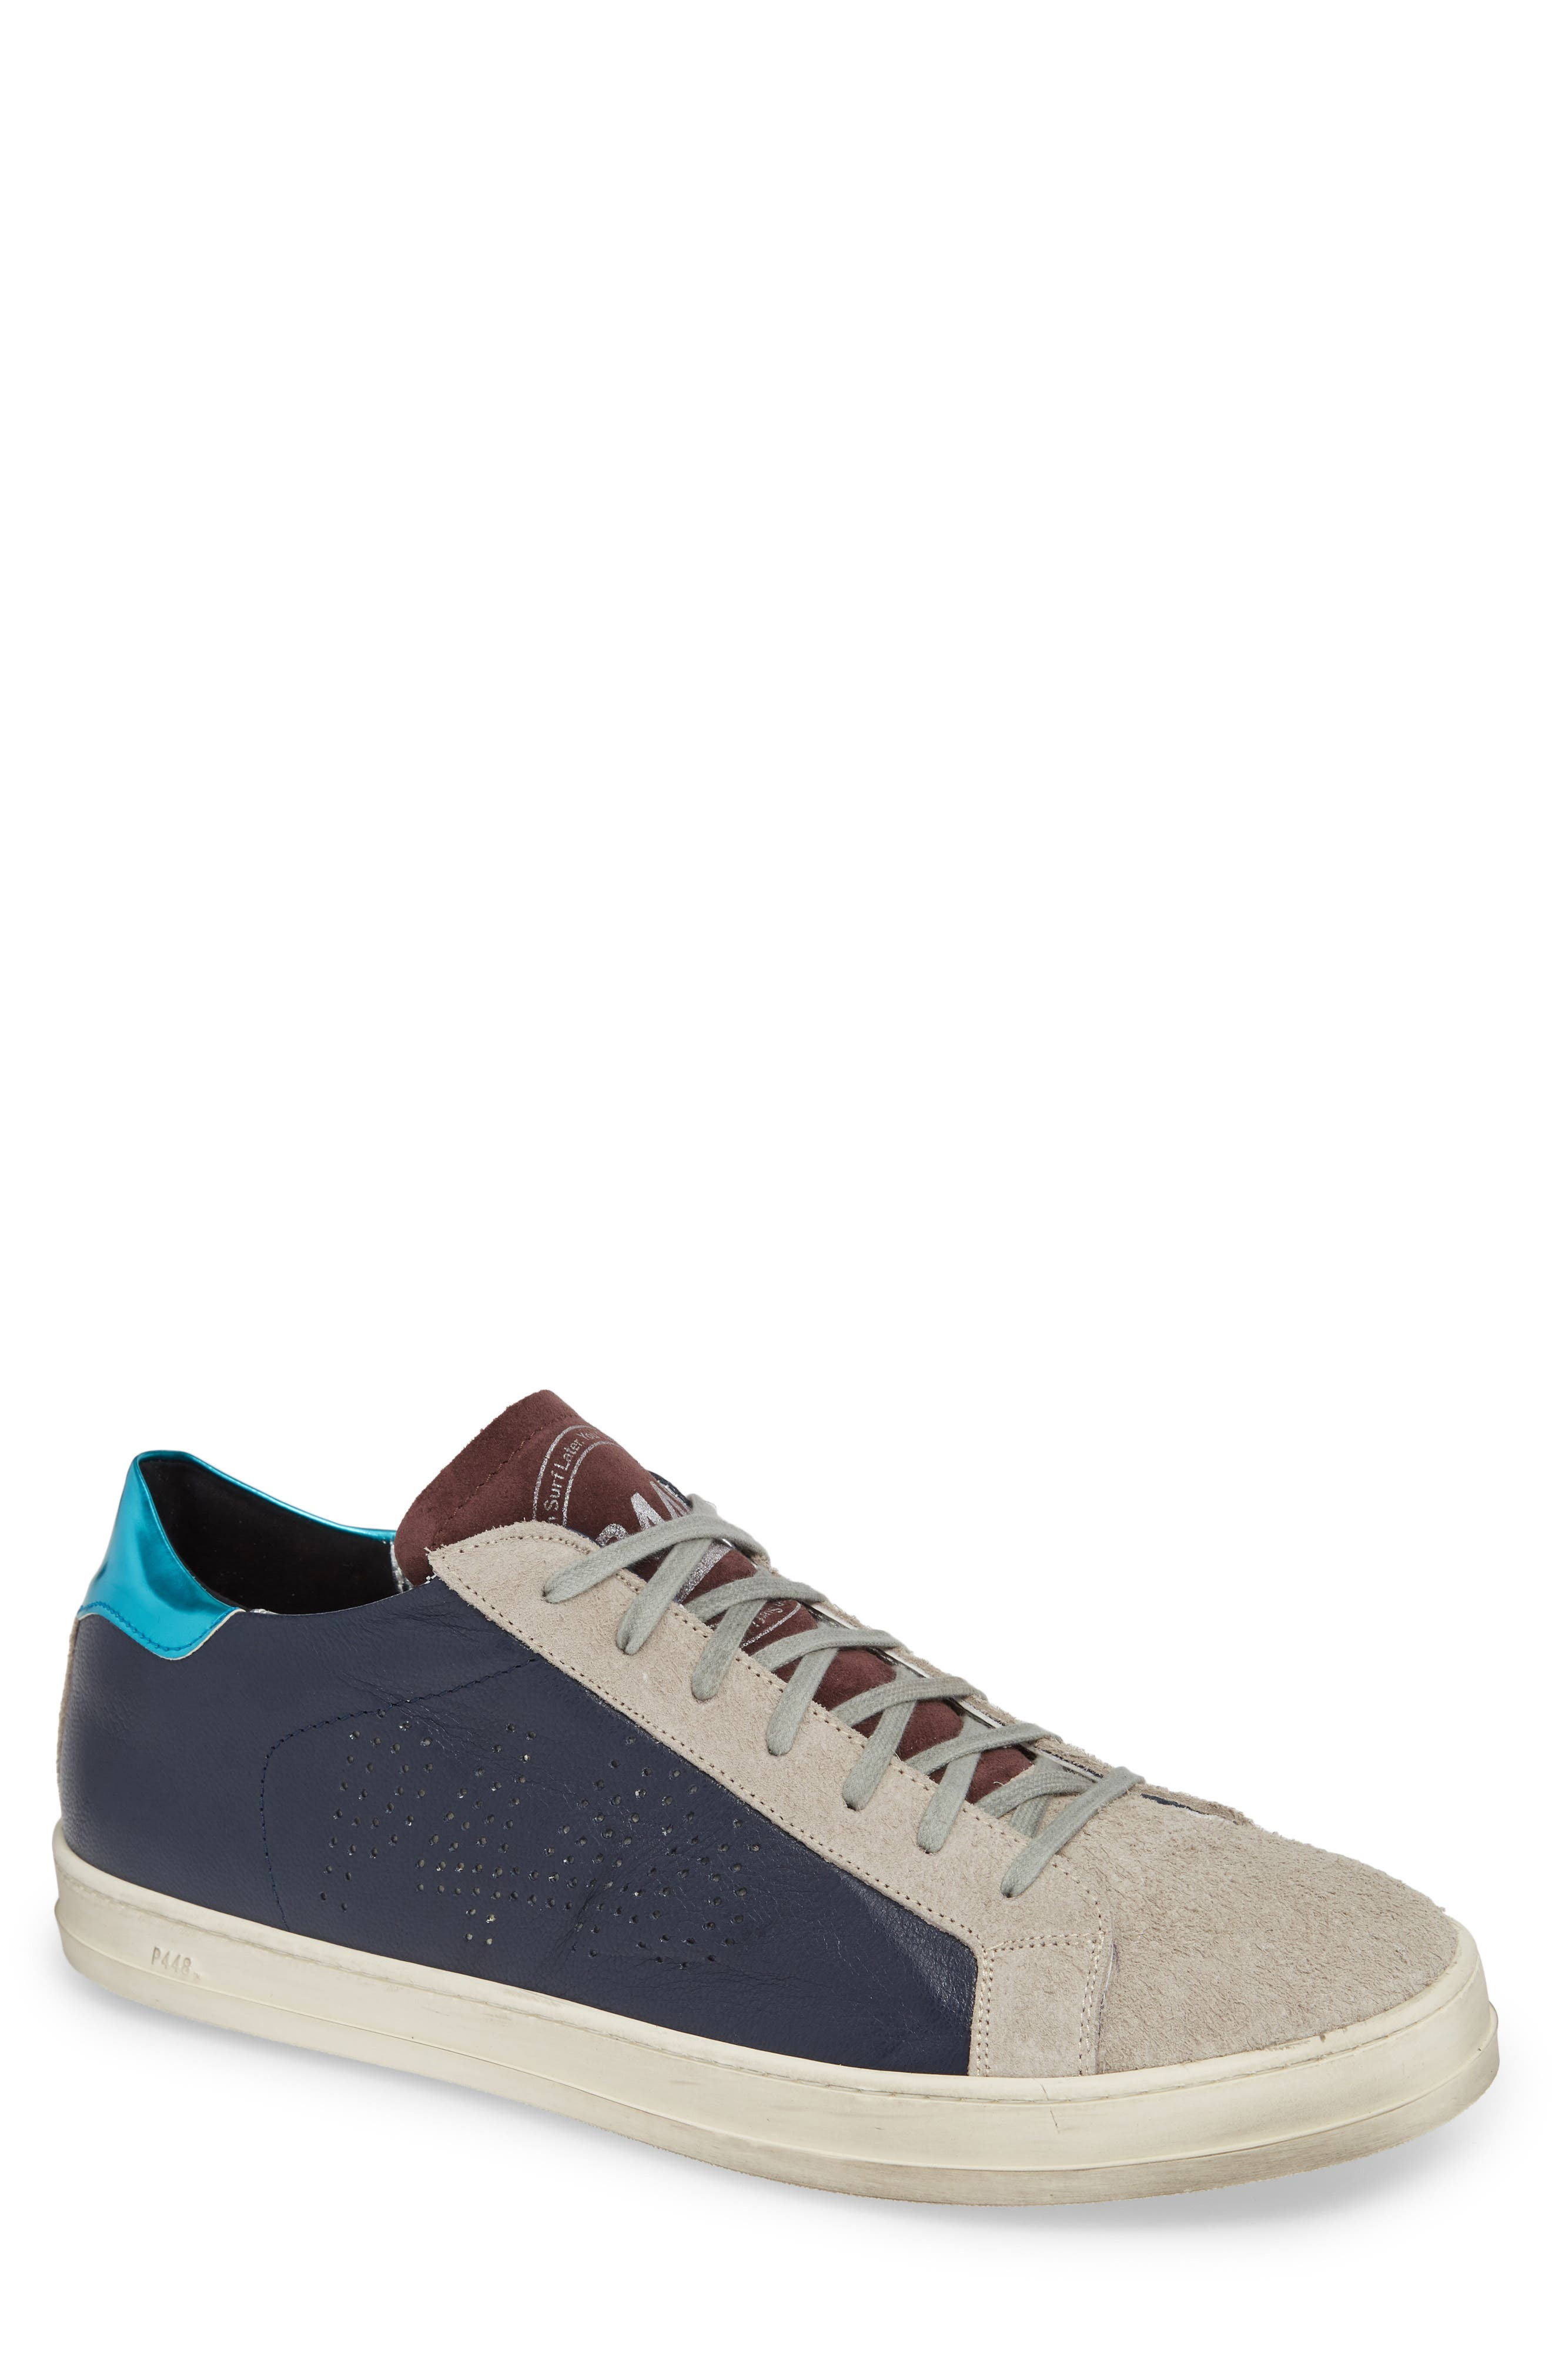 A8 John Sneaker,                             Main thumbnail 1, color,                             NAVY